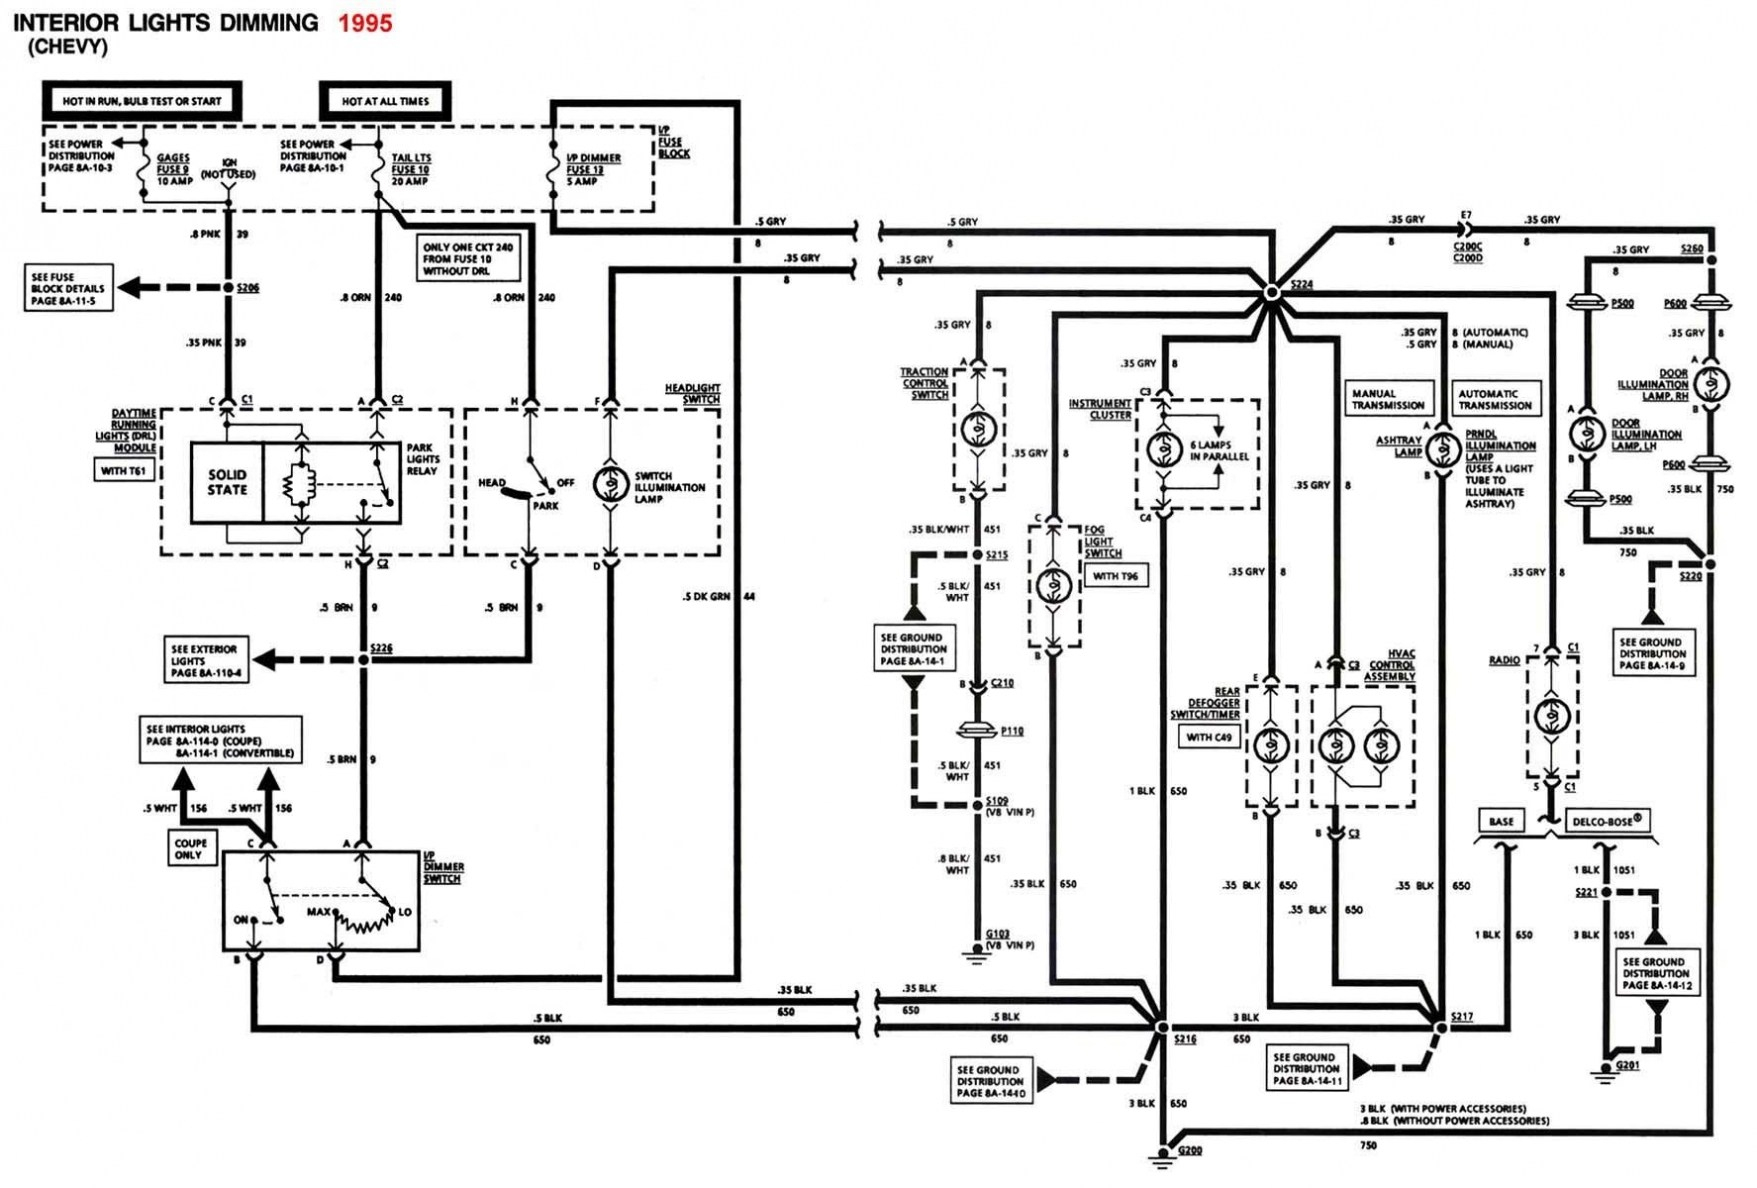 Winnebago Ac Wiring Diagram Free Picture Schematic | Wiring Diagram - Winnebago Motorhome Wiring Diagram